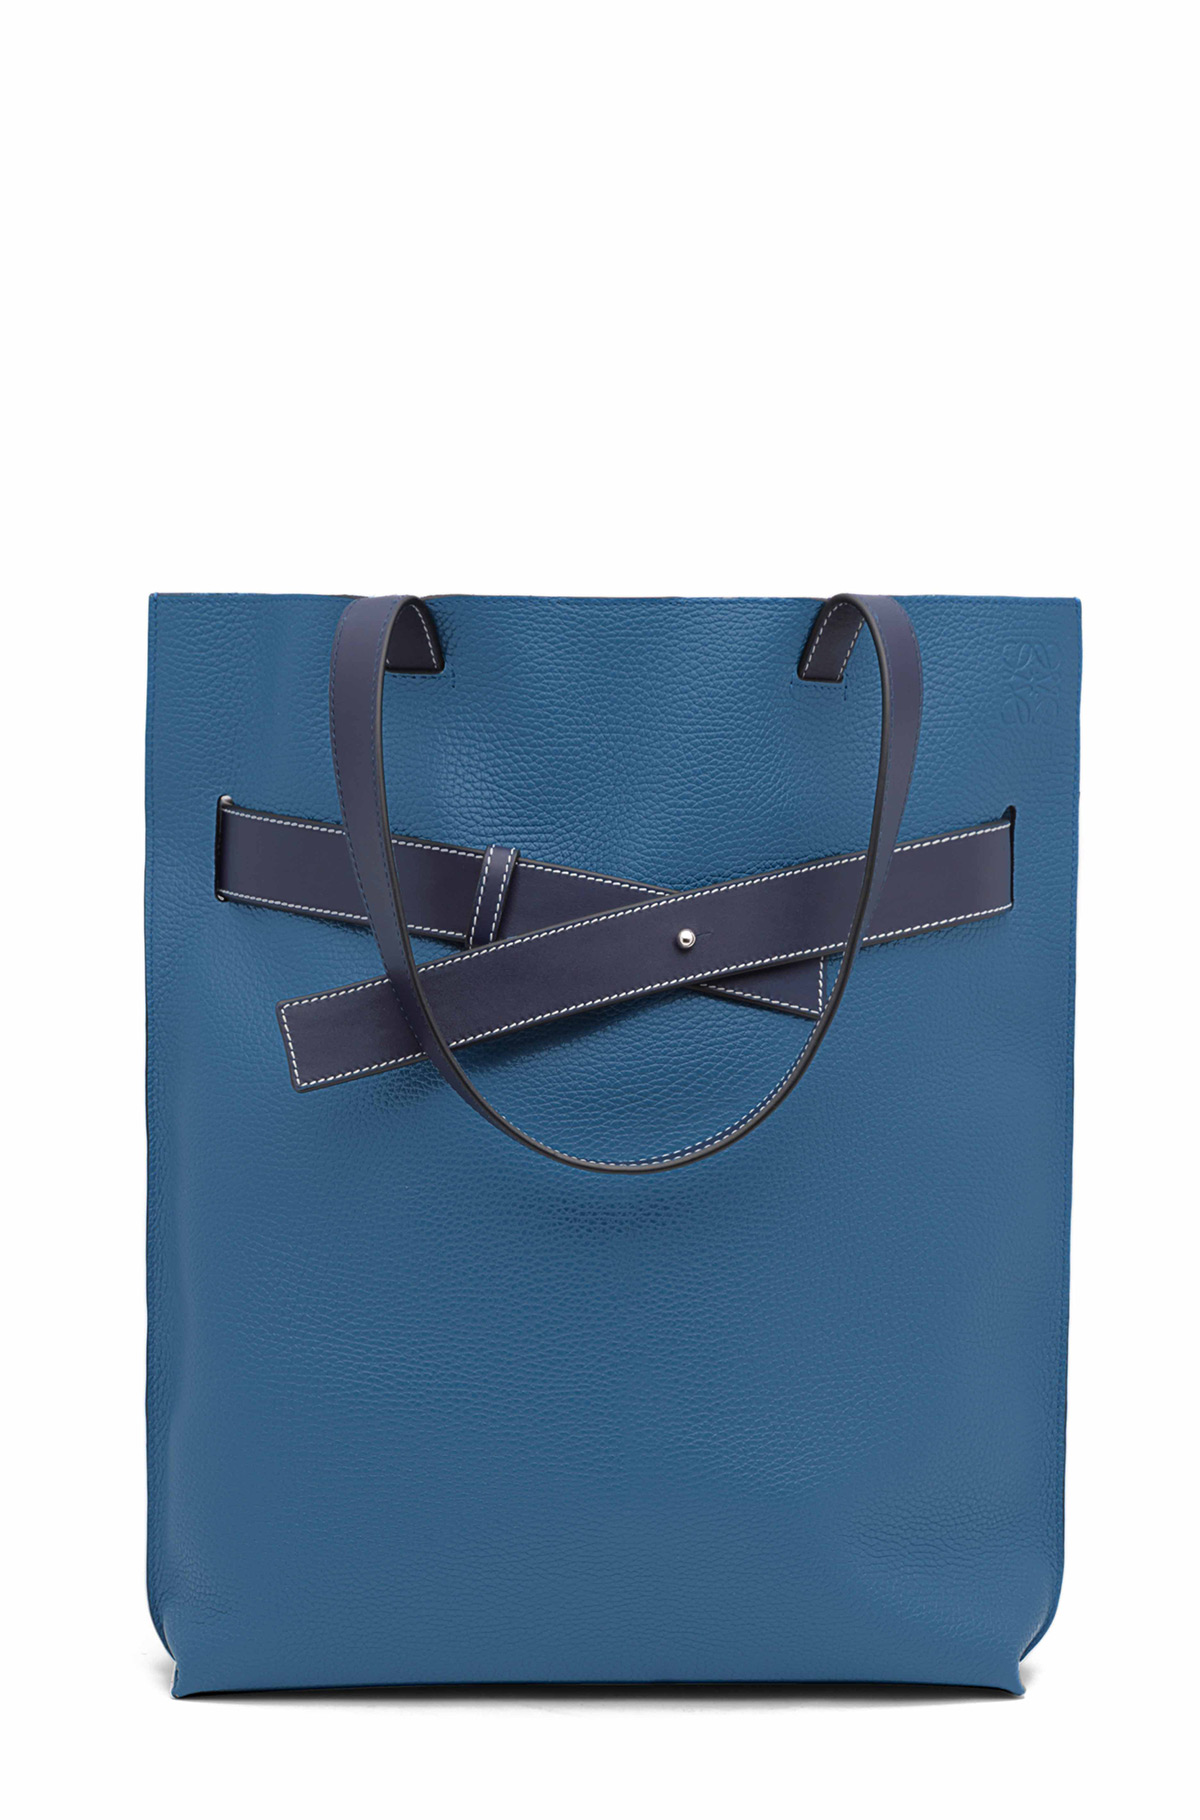 LOEWE Bolso Strap Tote Vertical Azul Duque/Marine Azul front